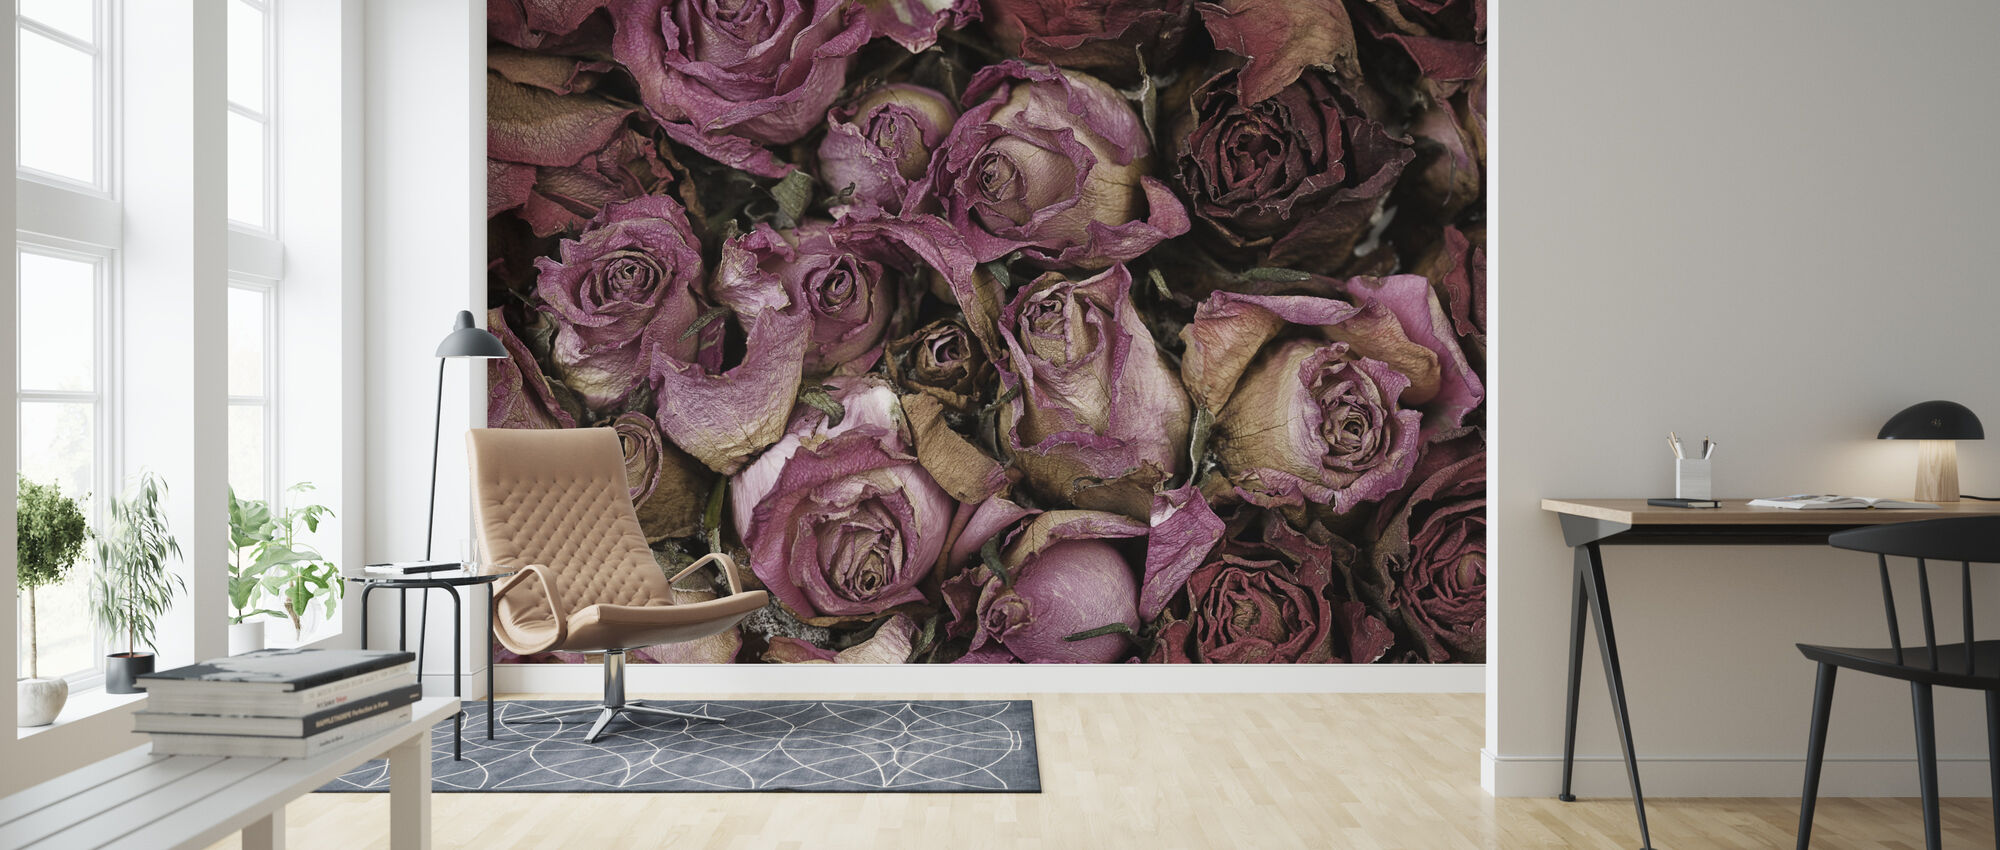 Dried Roses - Wallpaper - Living Room